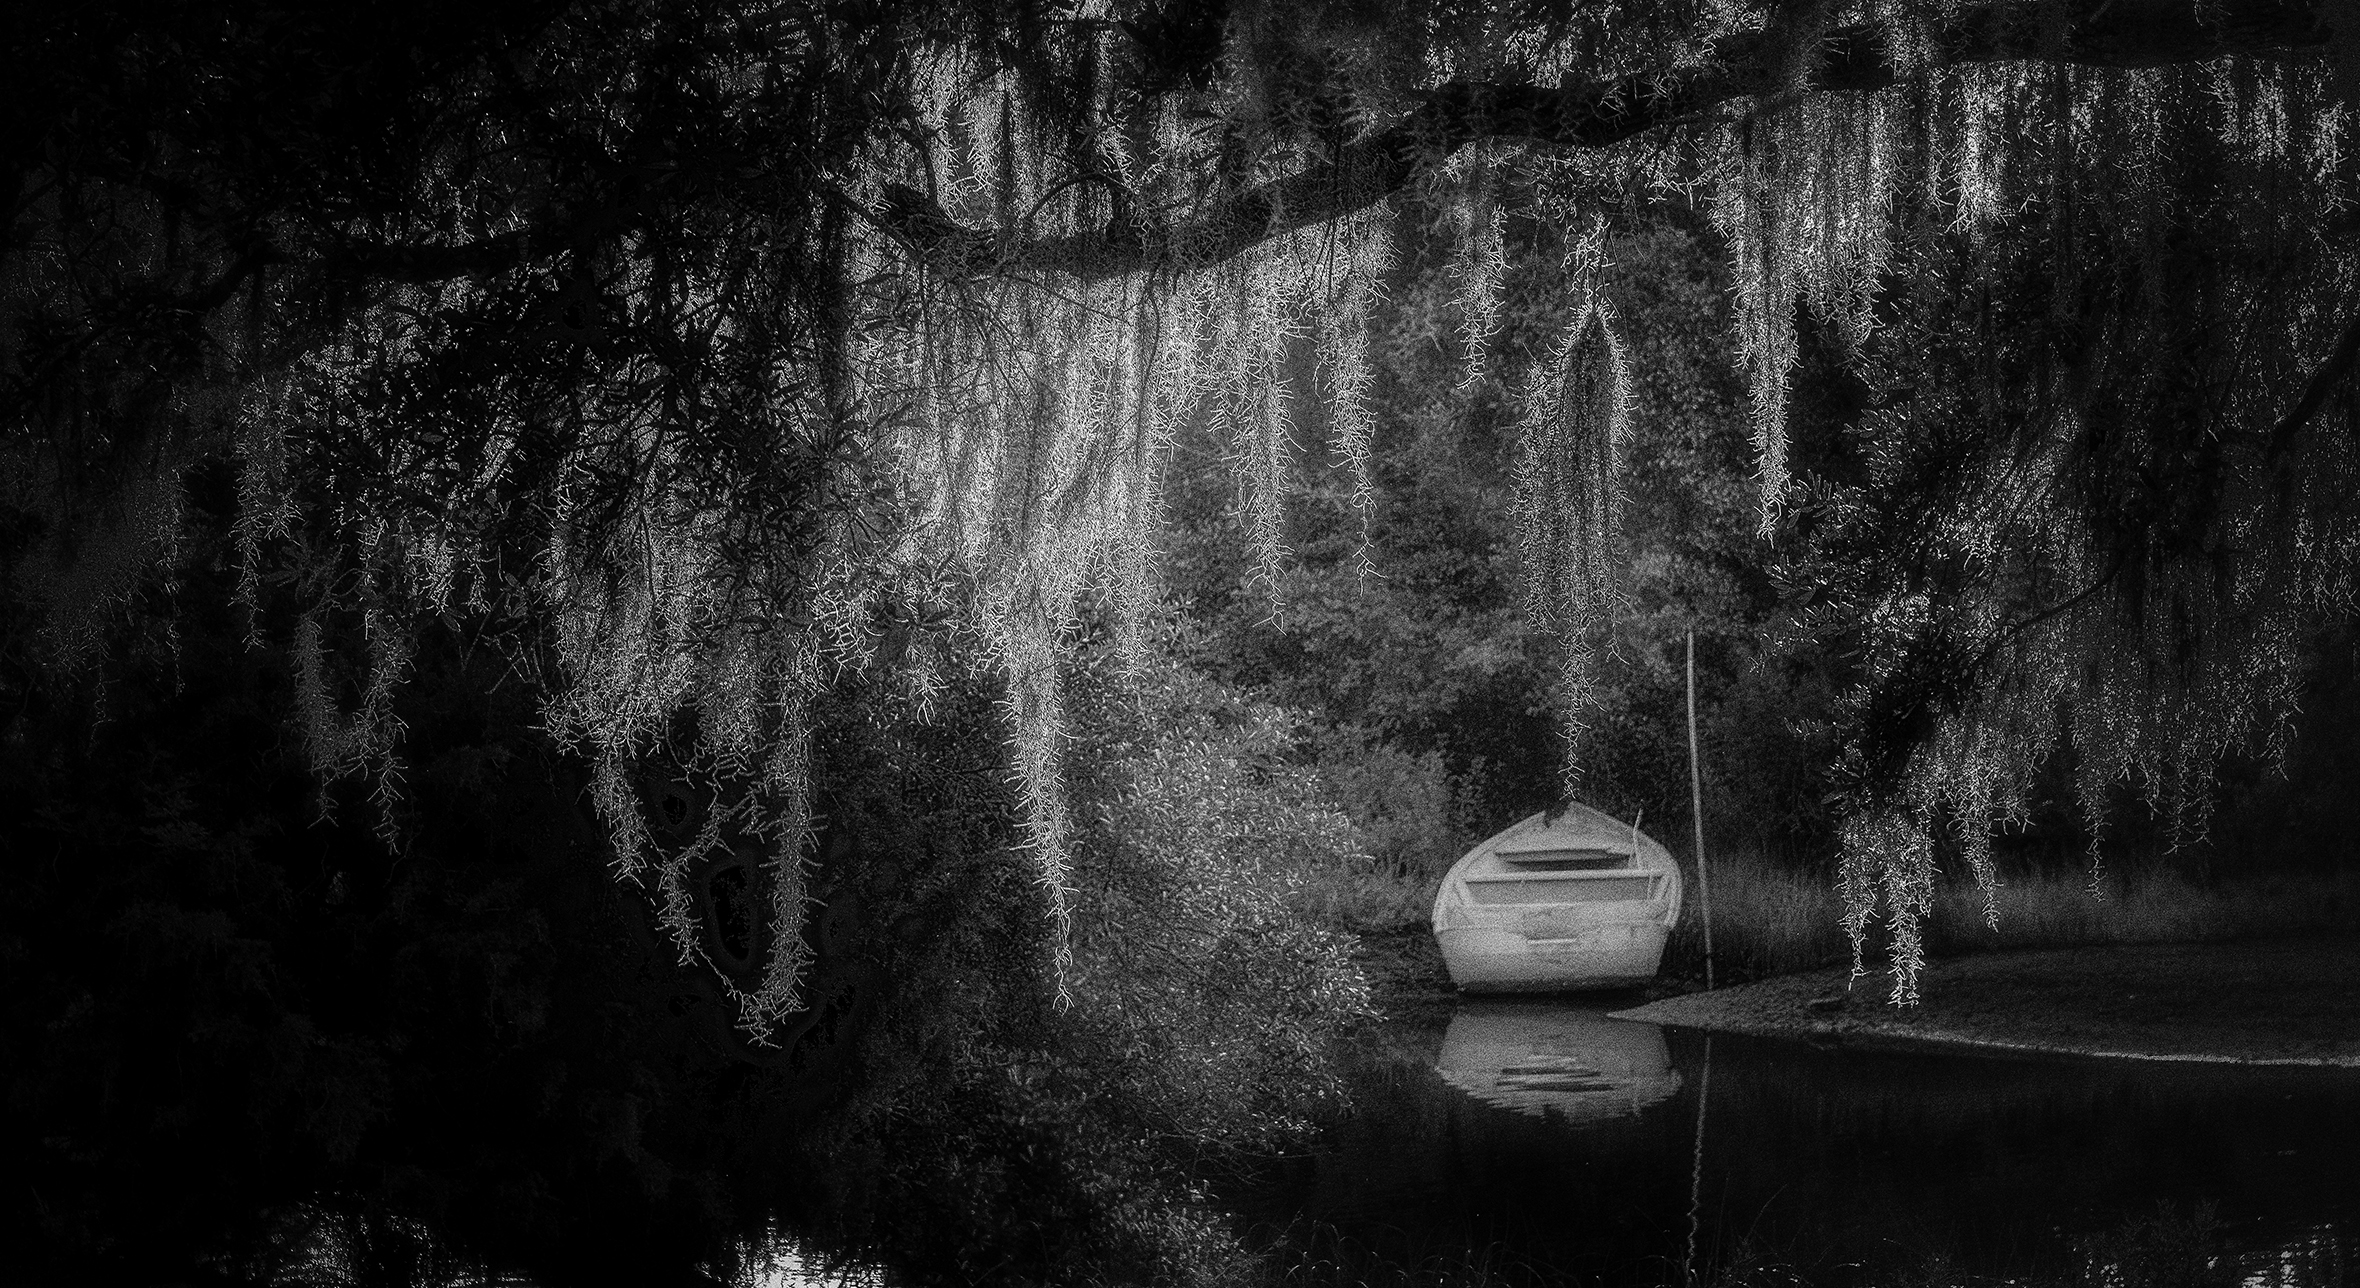 A boat in the water framed by the branches and leaves of a willow tree.